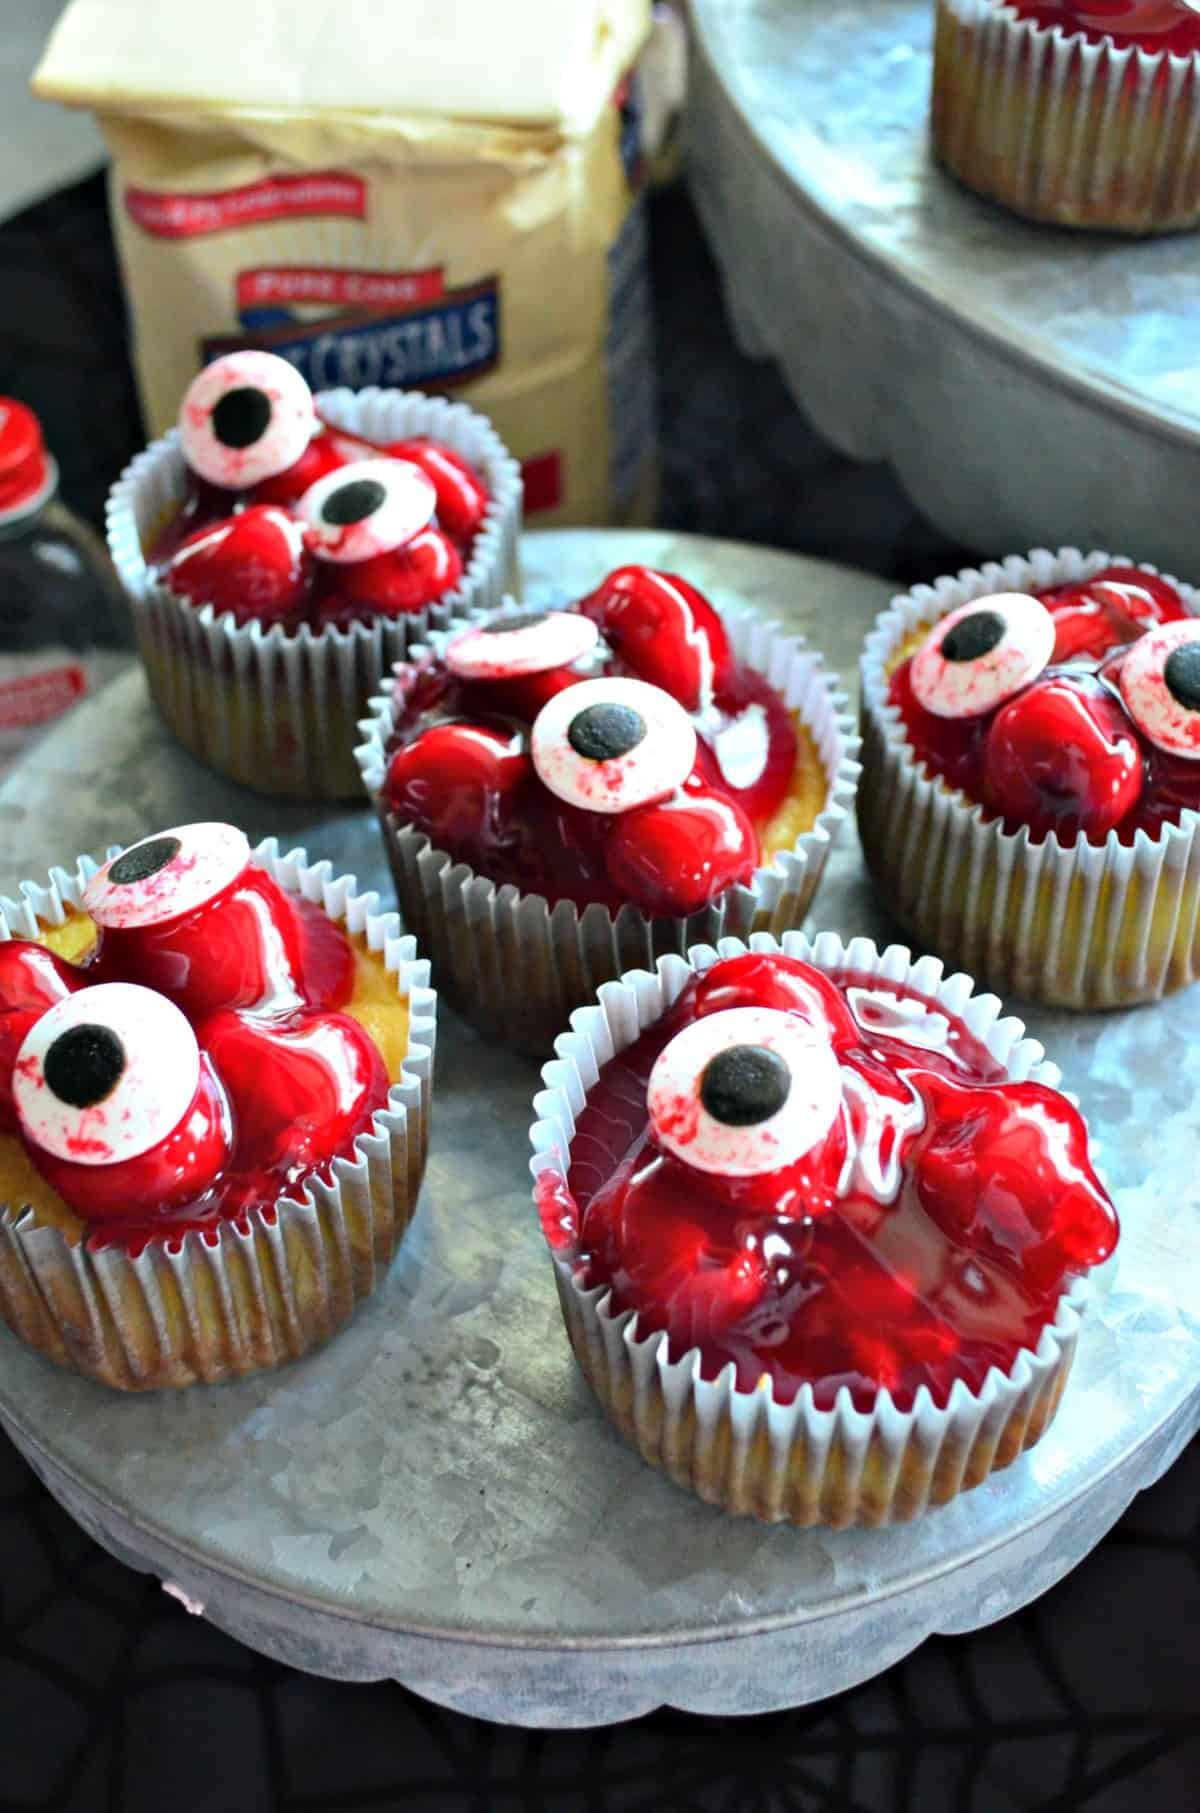 5 cupcakes on cupcake stand topped with red cherries in glaze with candy eyeballs on top and title text.